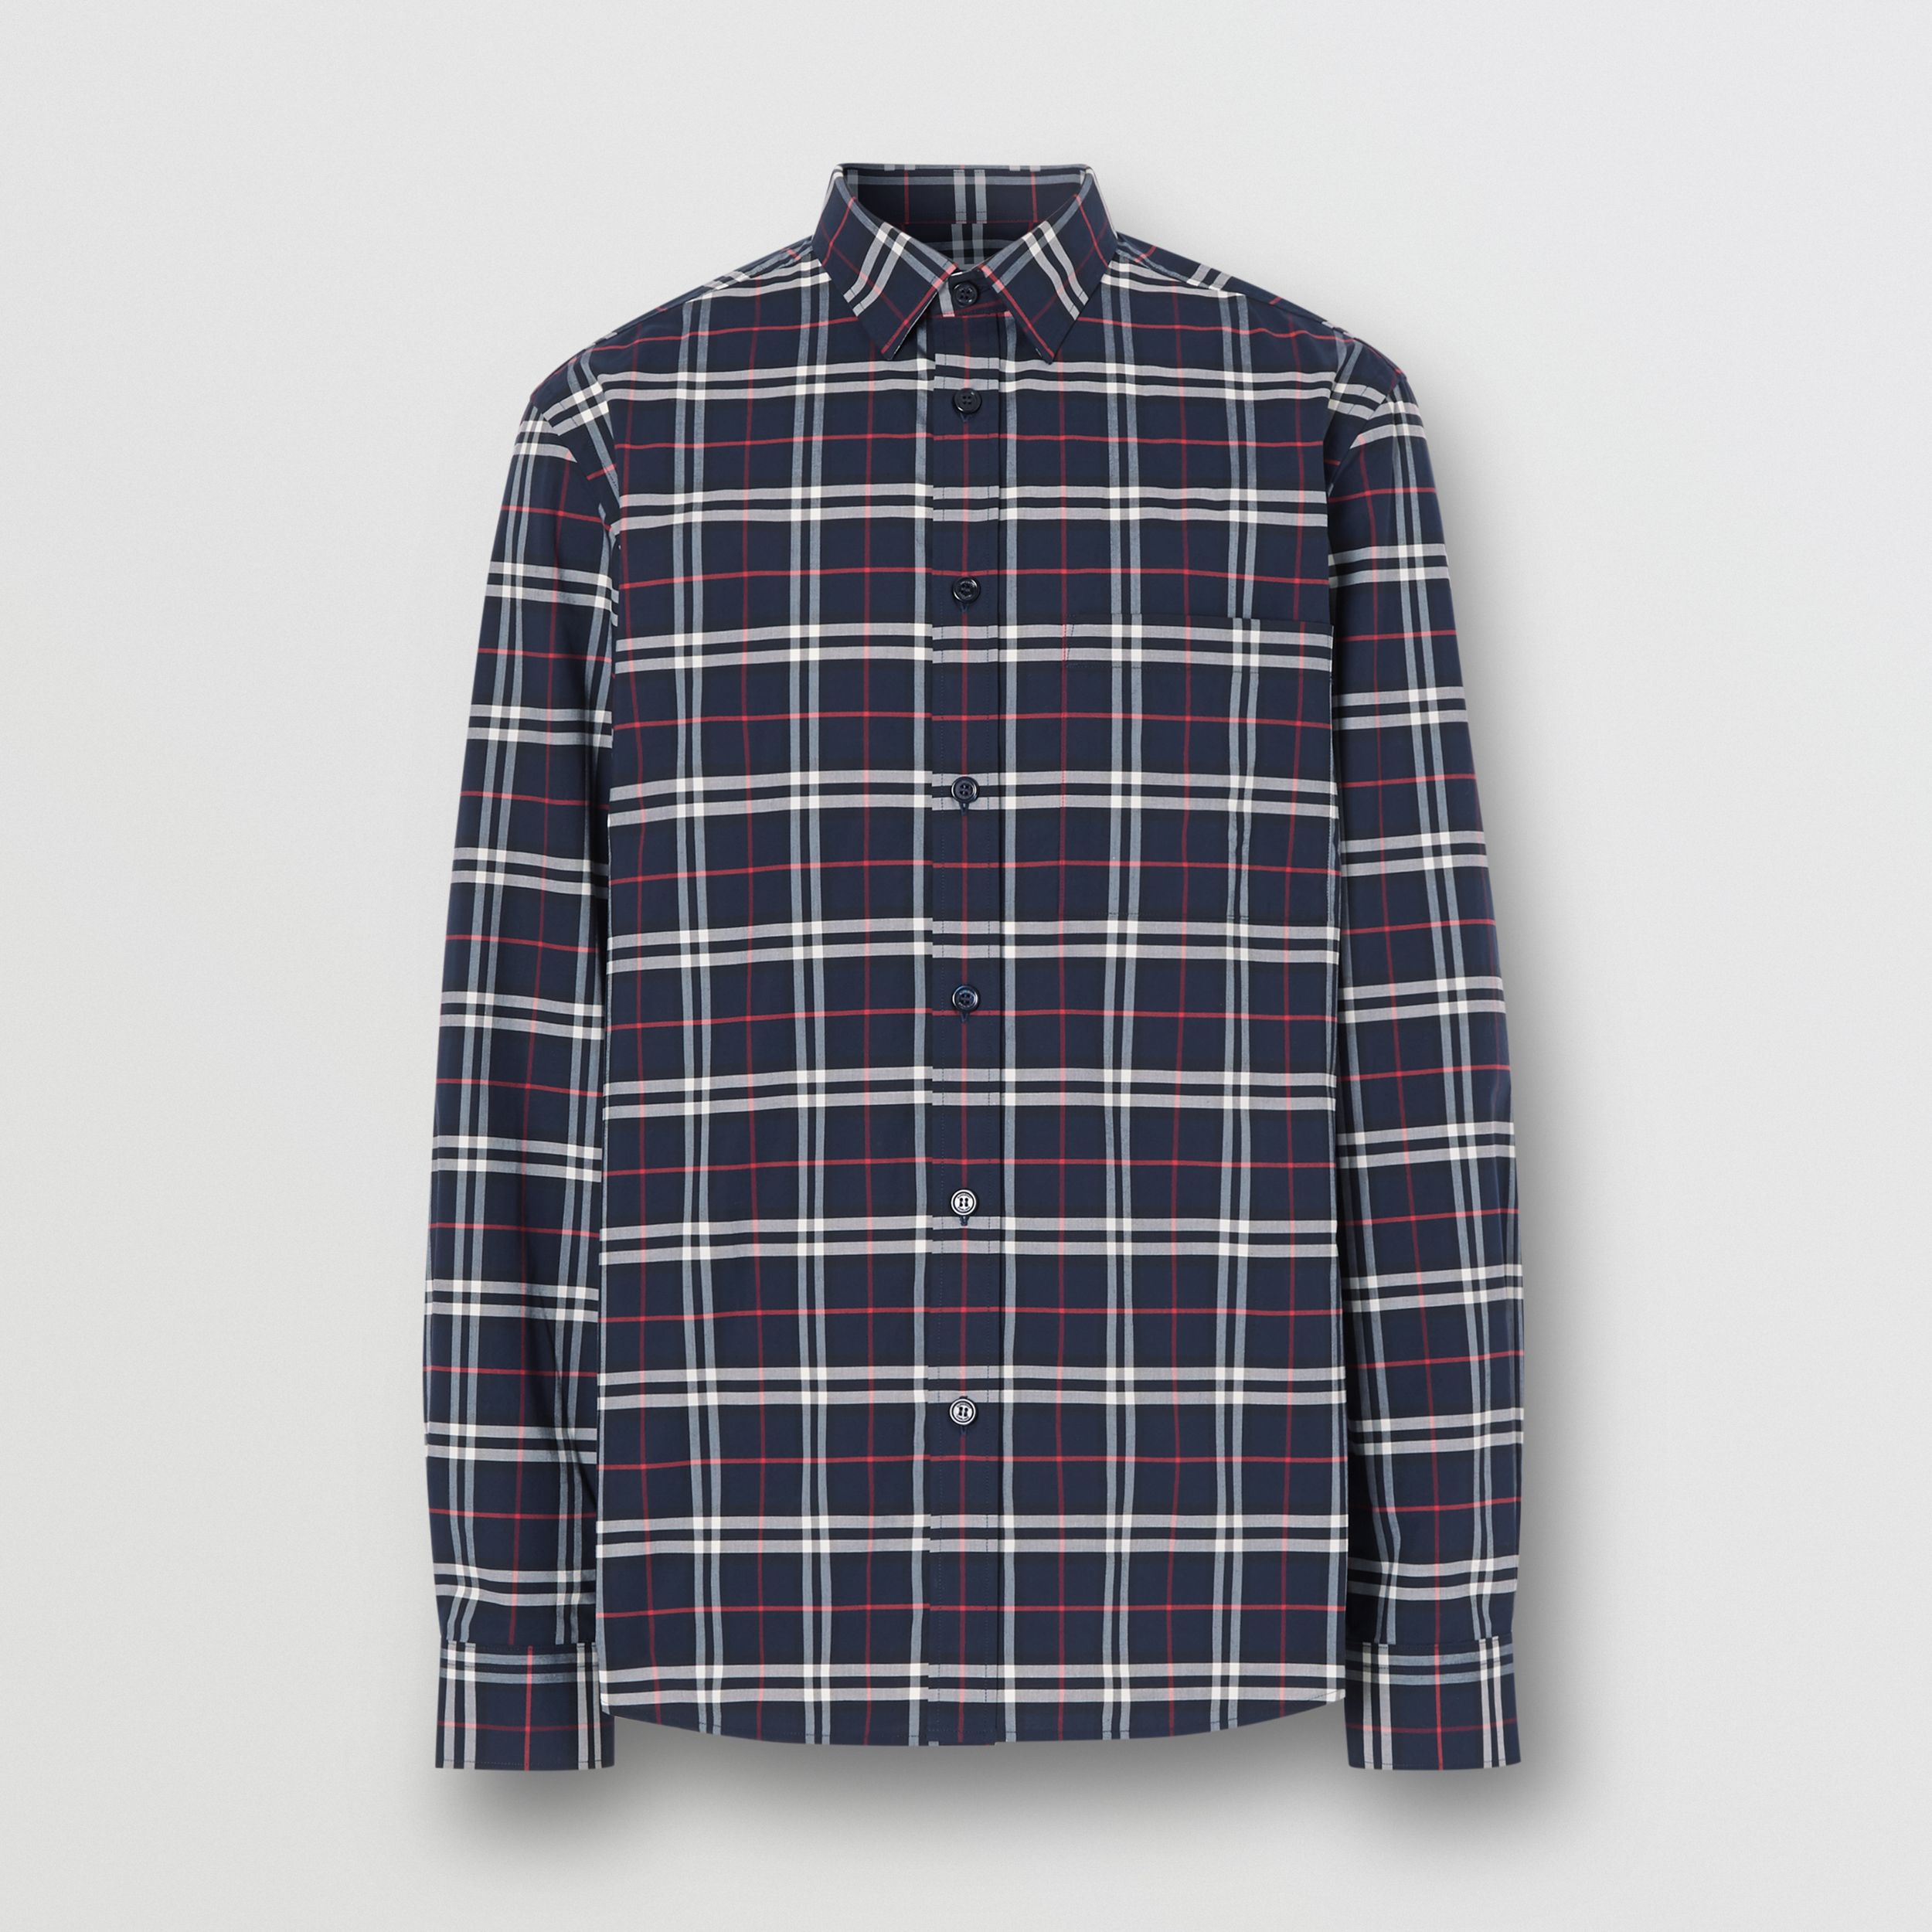 Small Scale Check Stretch Cotton Shirt in Navy - Men | Burberry - 4